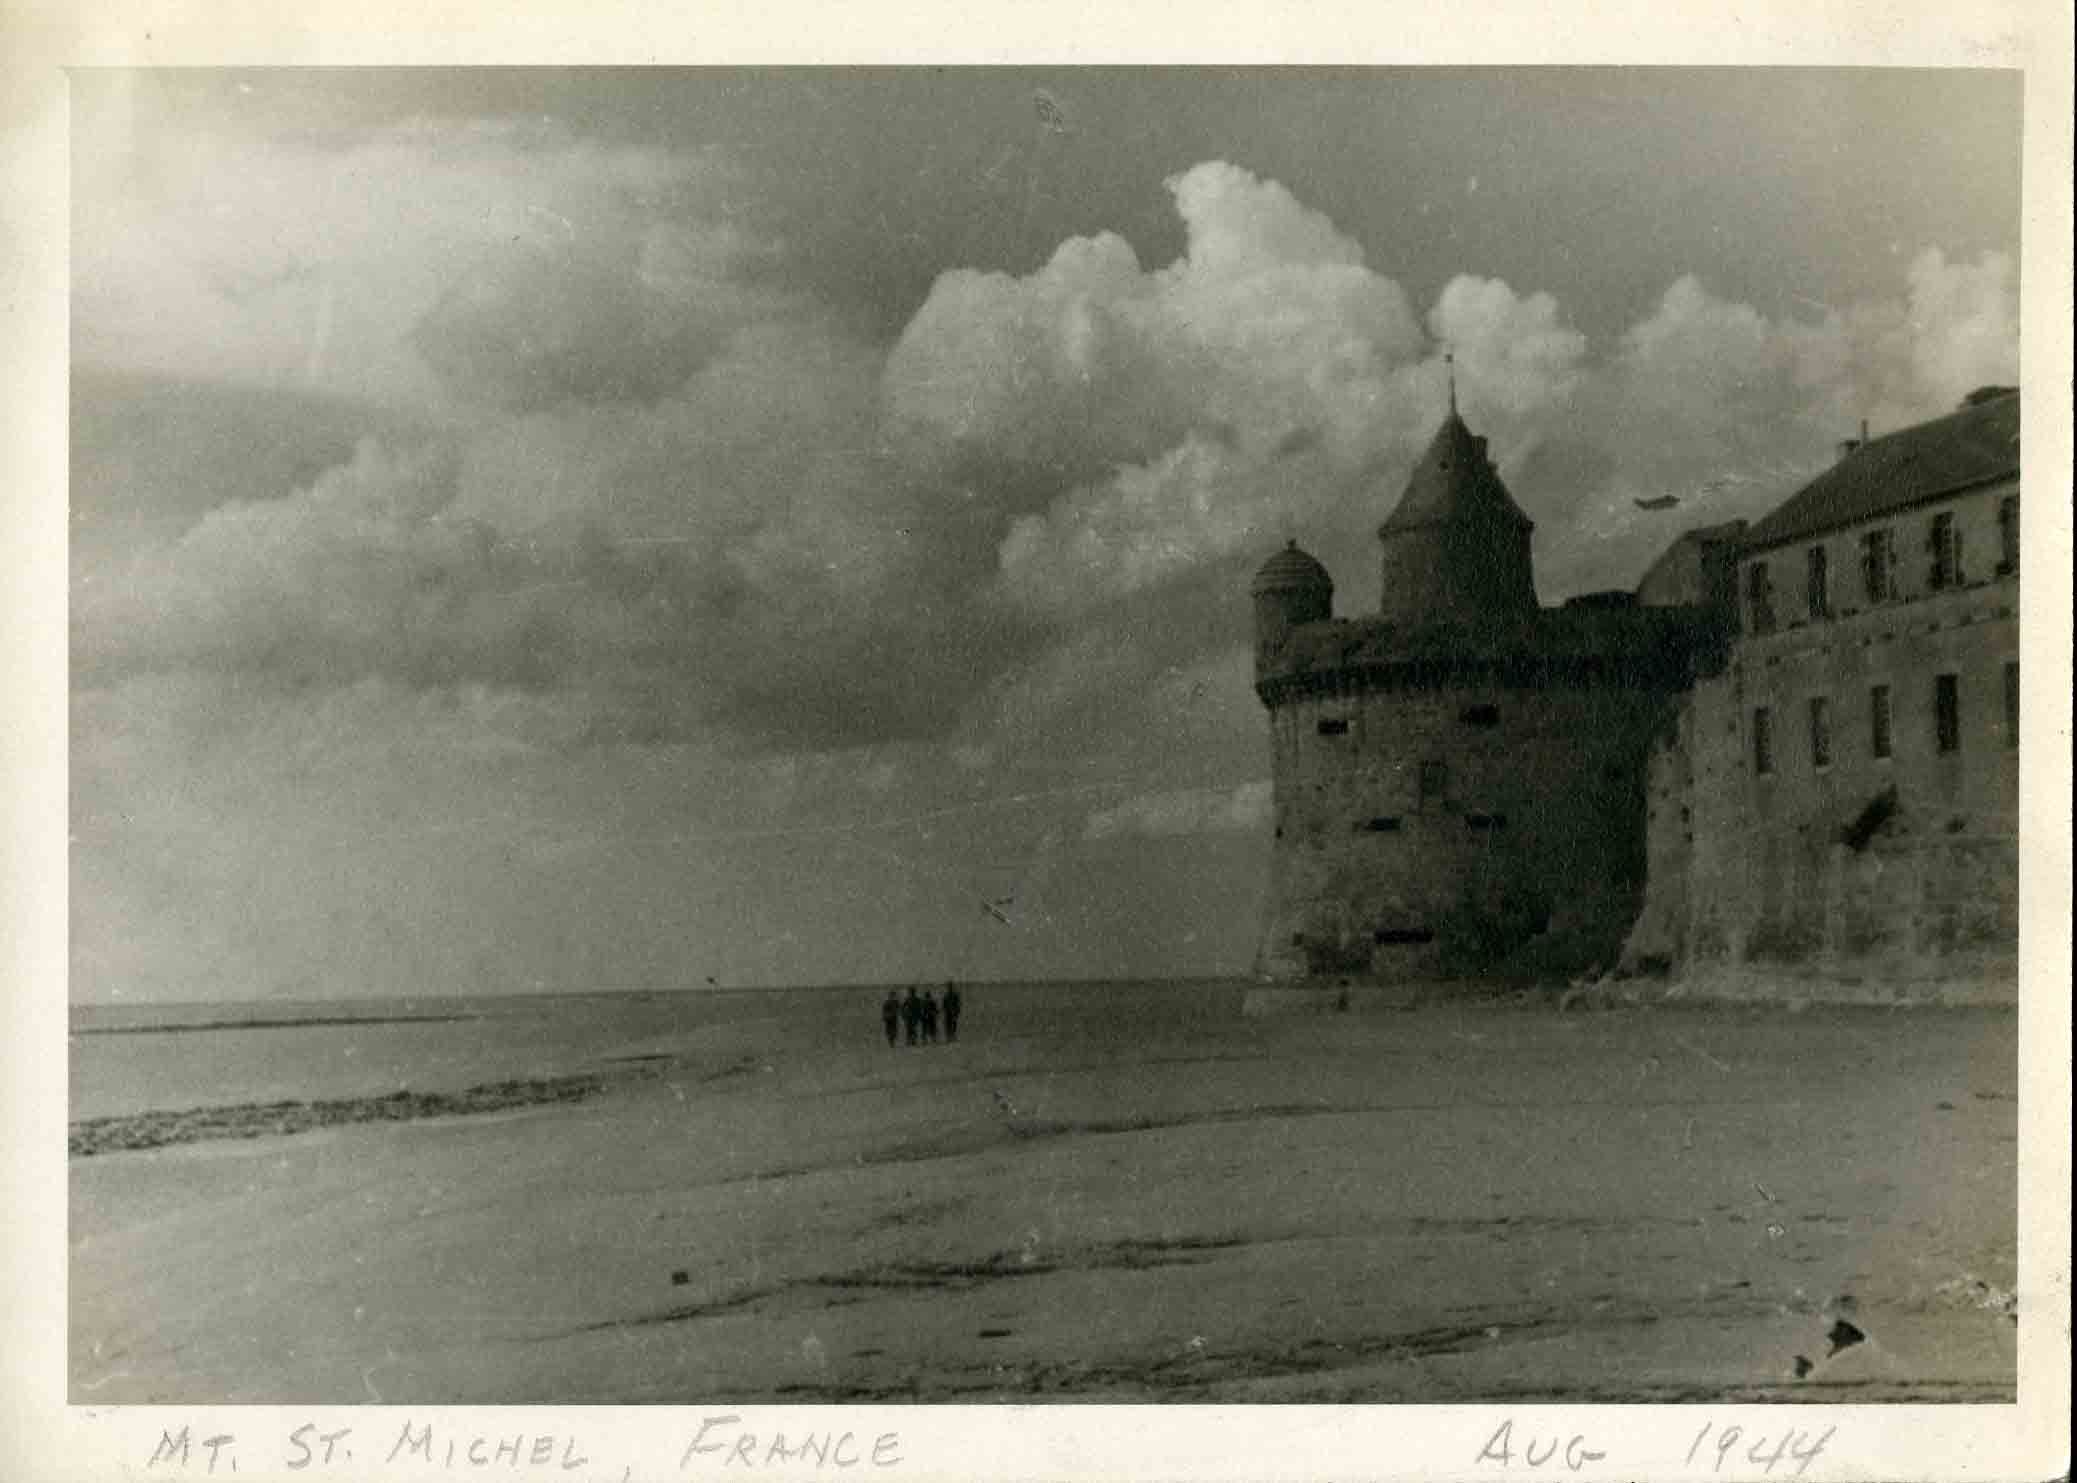 August 1944, Mont Saint-Michel, France. Photograph taken by James W. Wall.